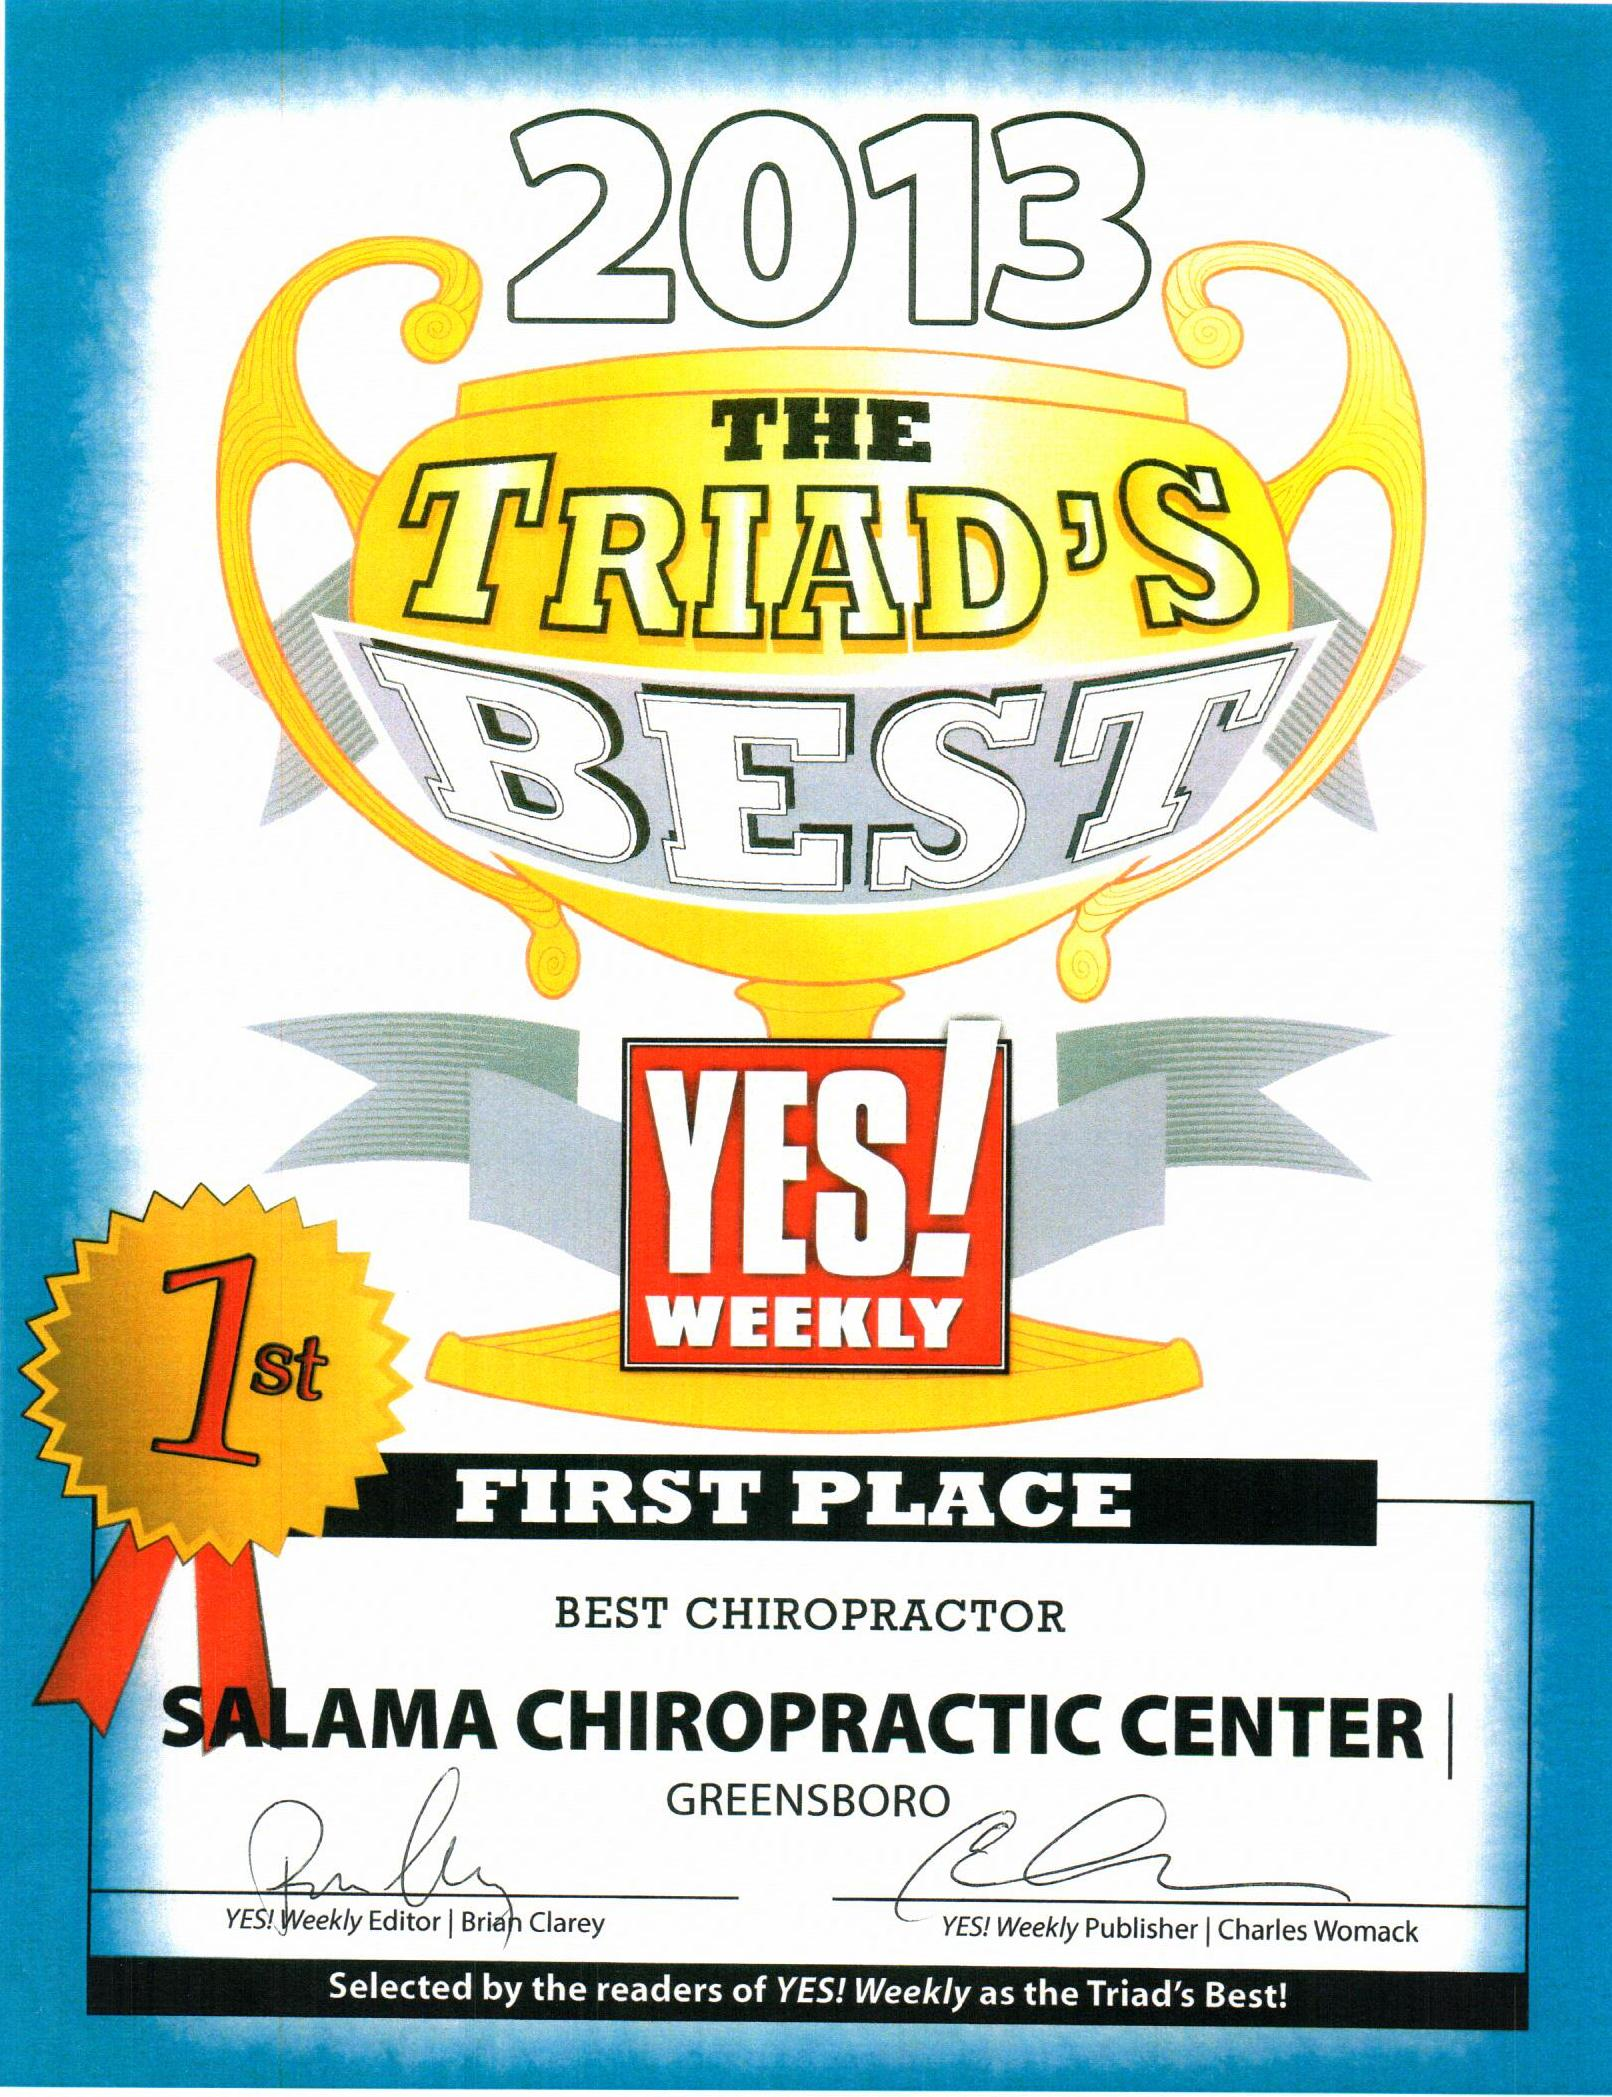 The Triad's Best Chiropractor